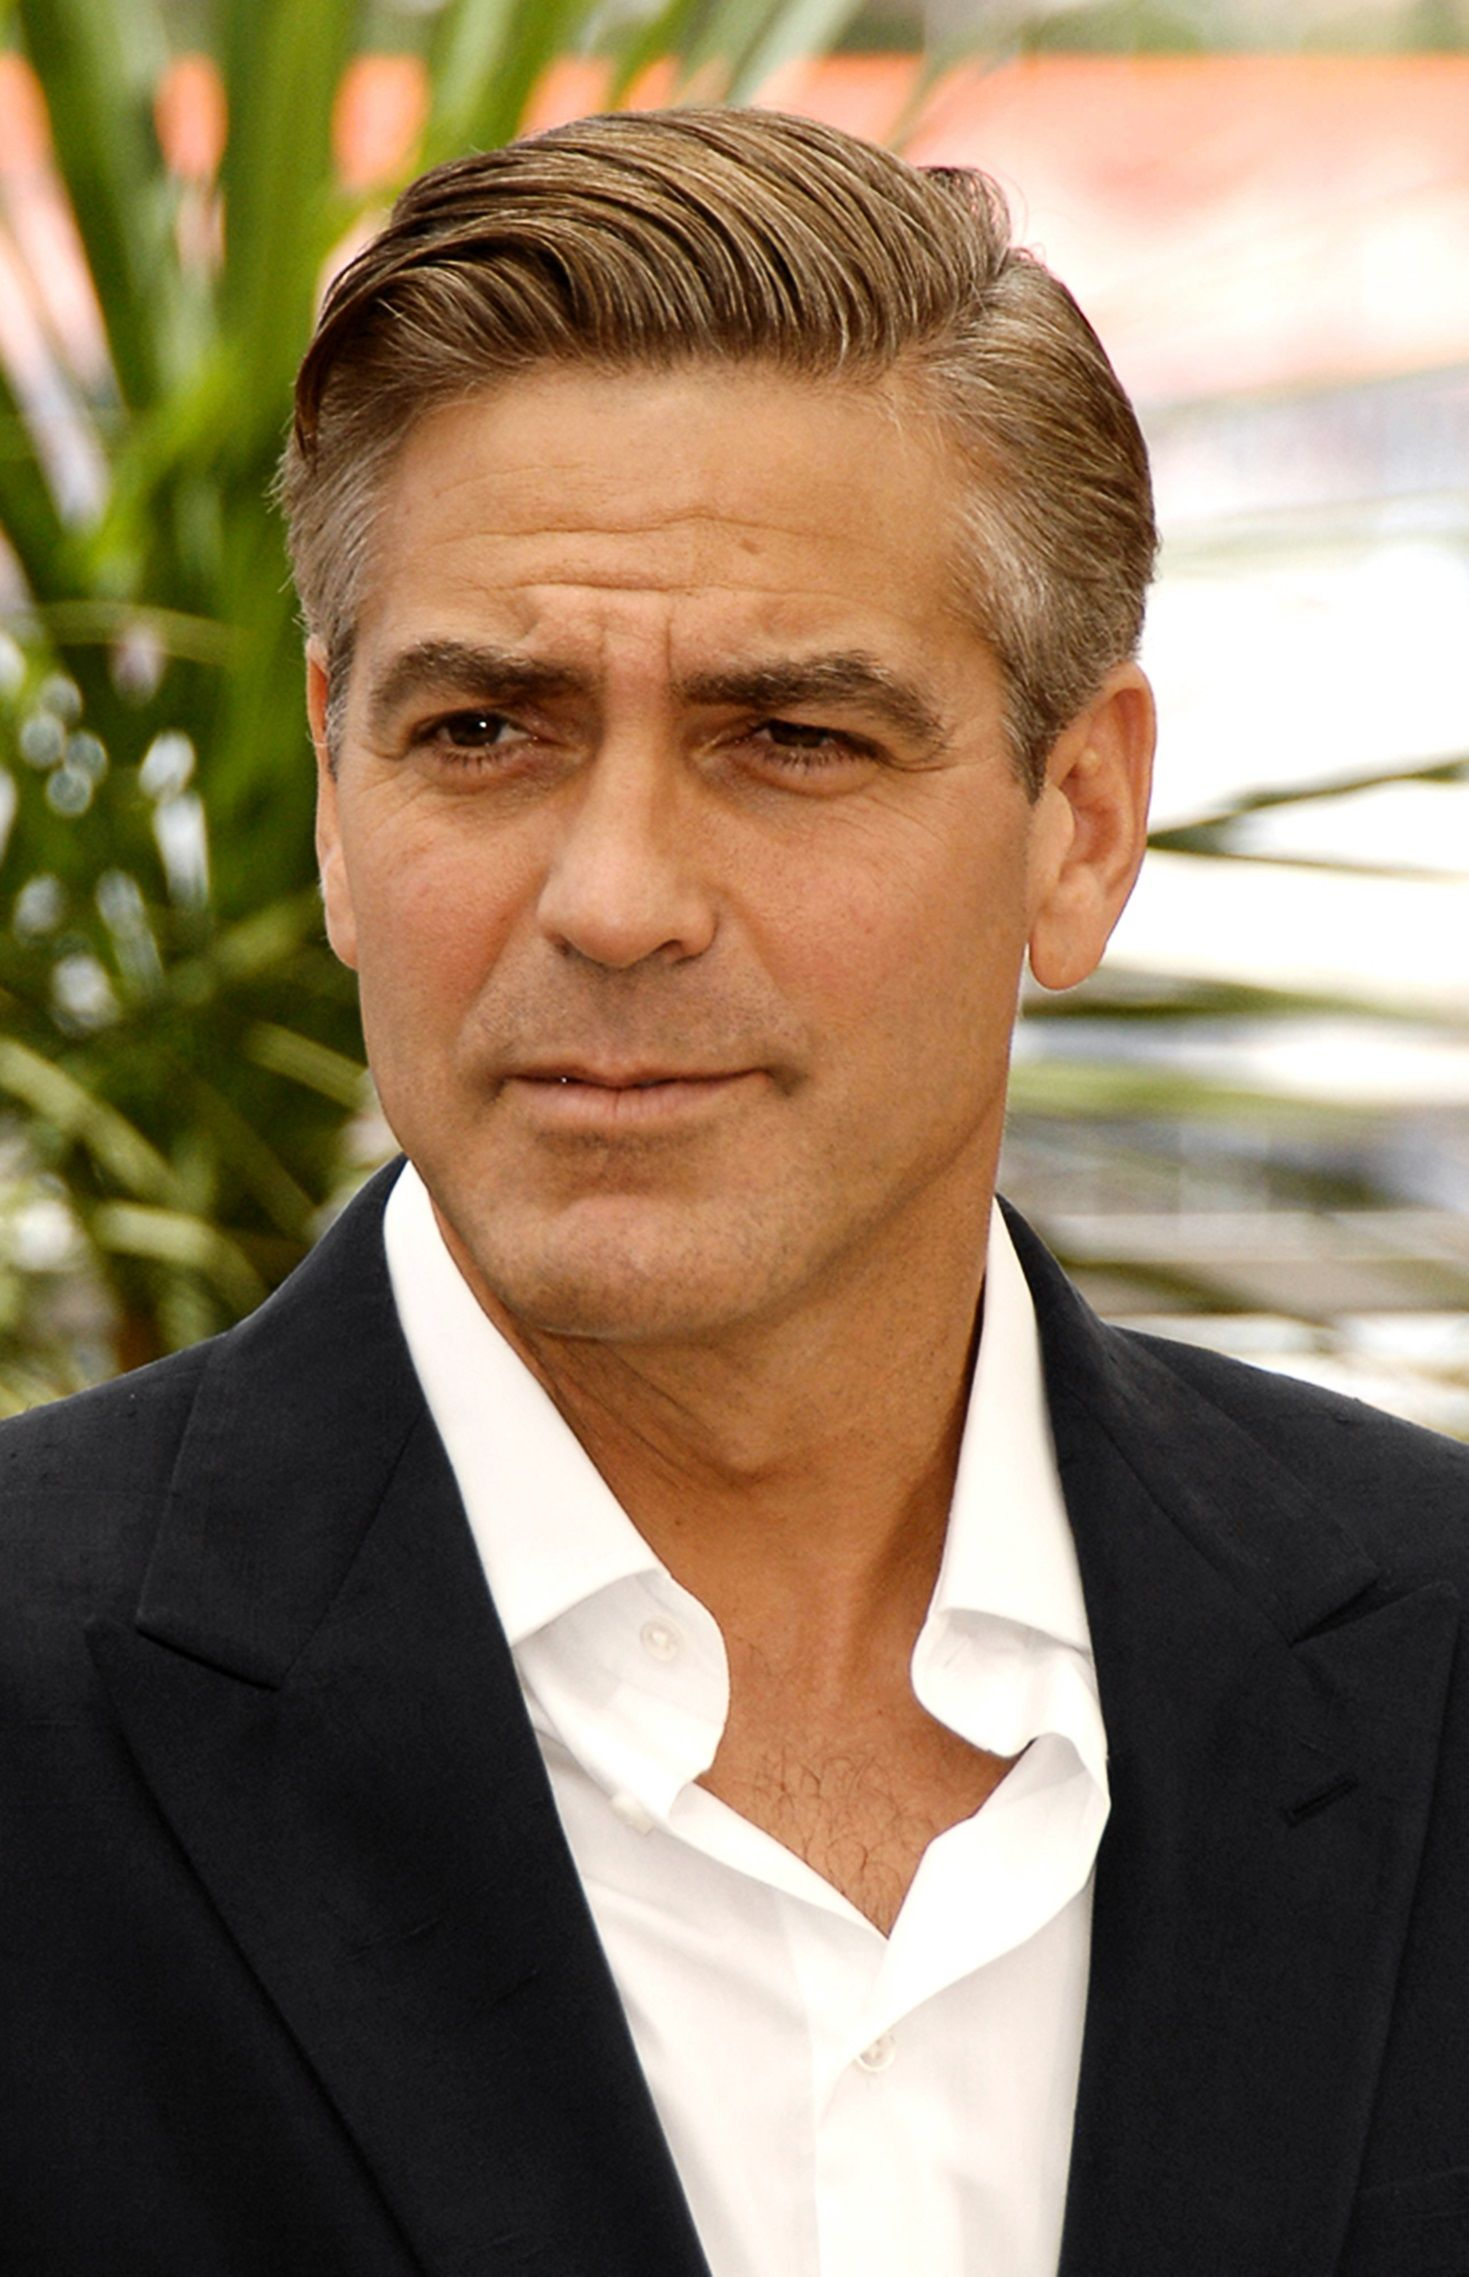 george clooney with an undercut   good look   old hairstyles